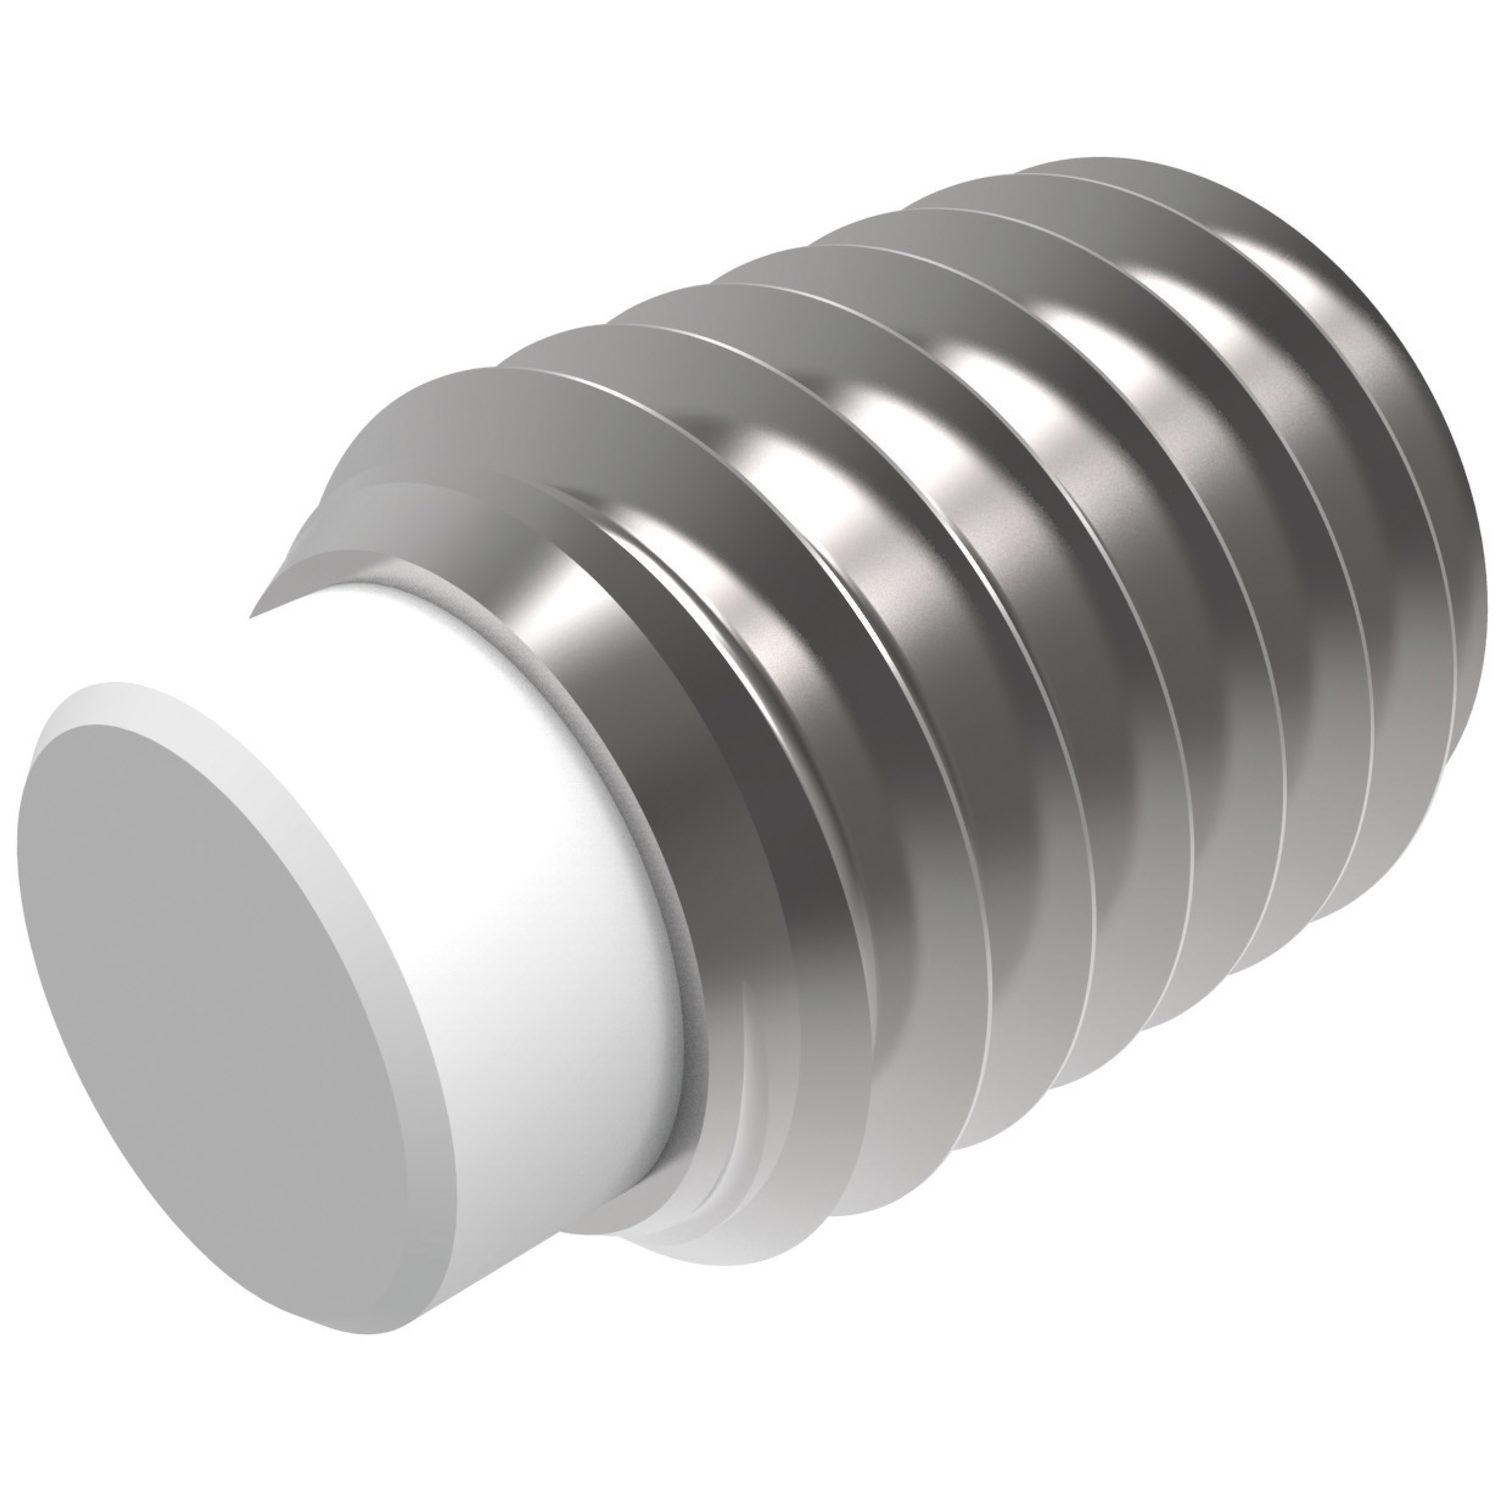 Tipped Screws from Automotion | Automotion